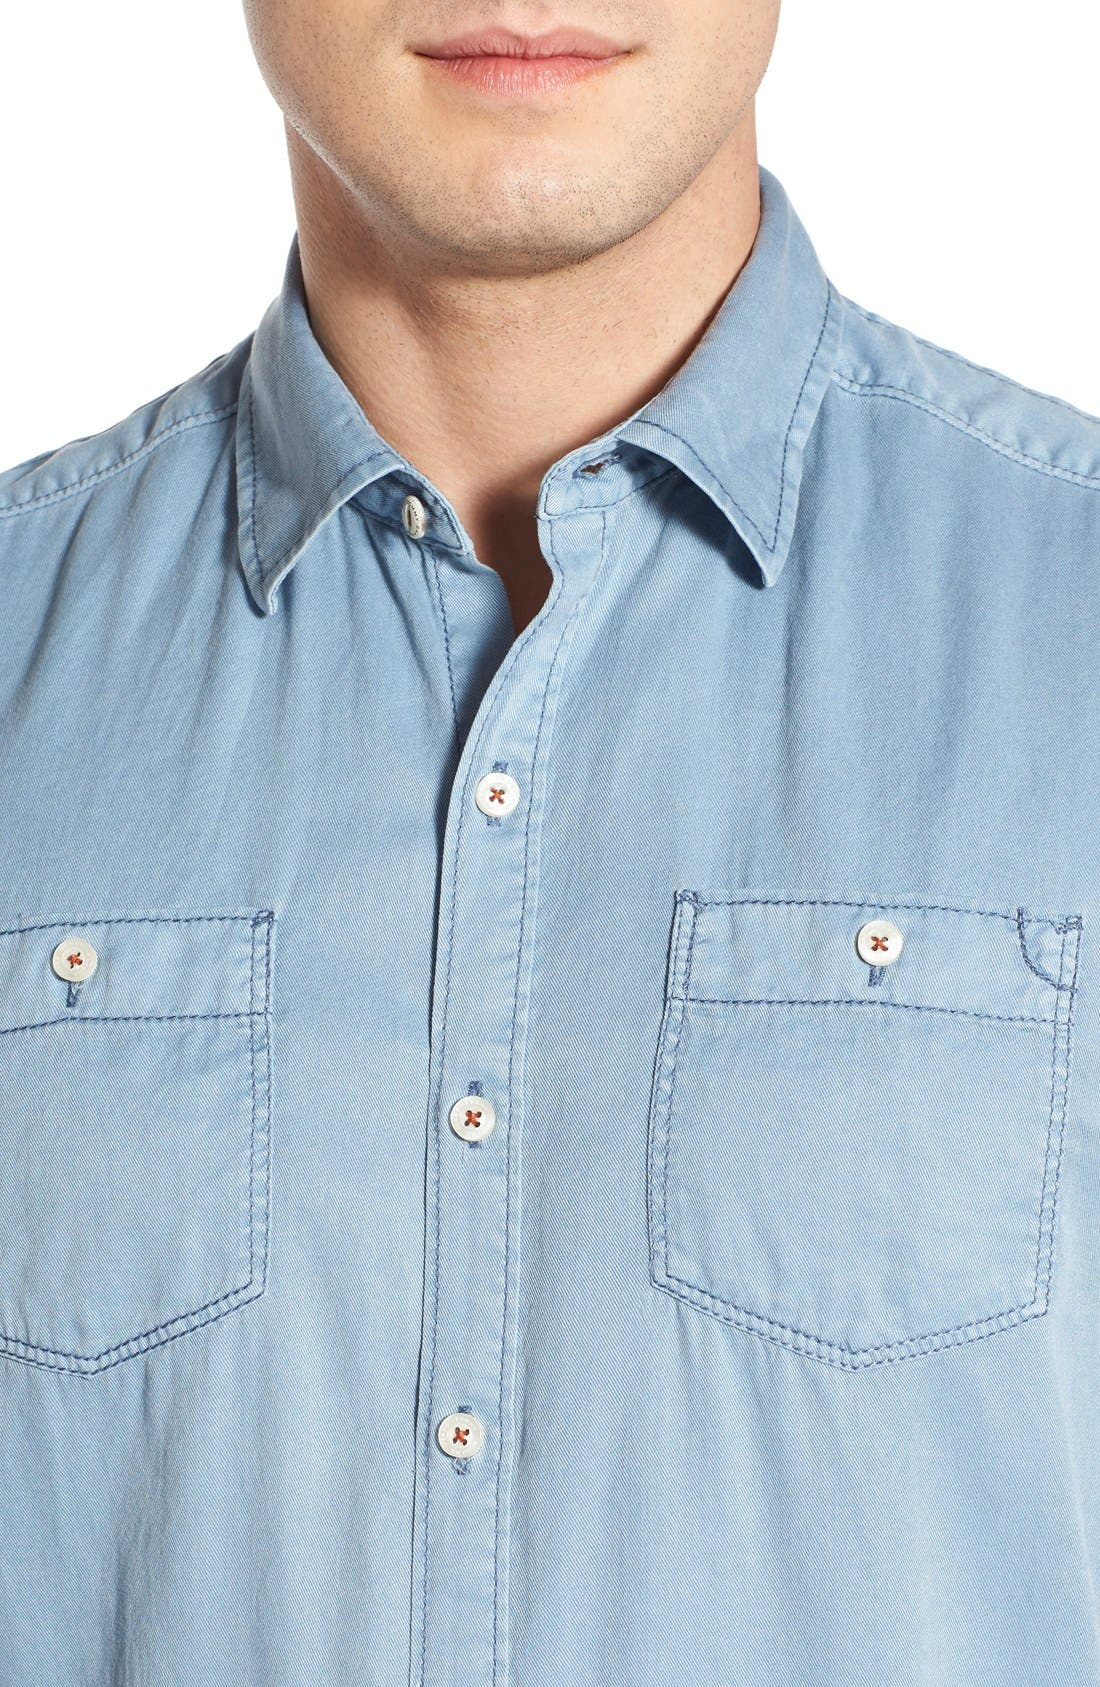 'New Twilly' Island Modern Fit Short Sleeve Twill Shirt,                             Alternate thumbnail 26, color,